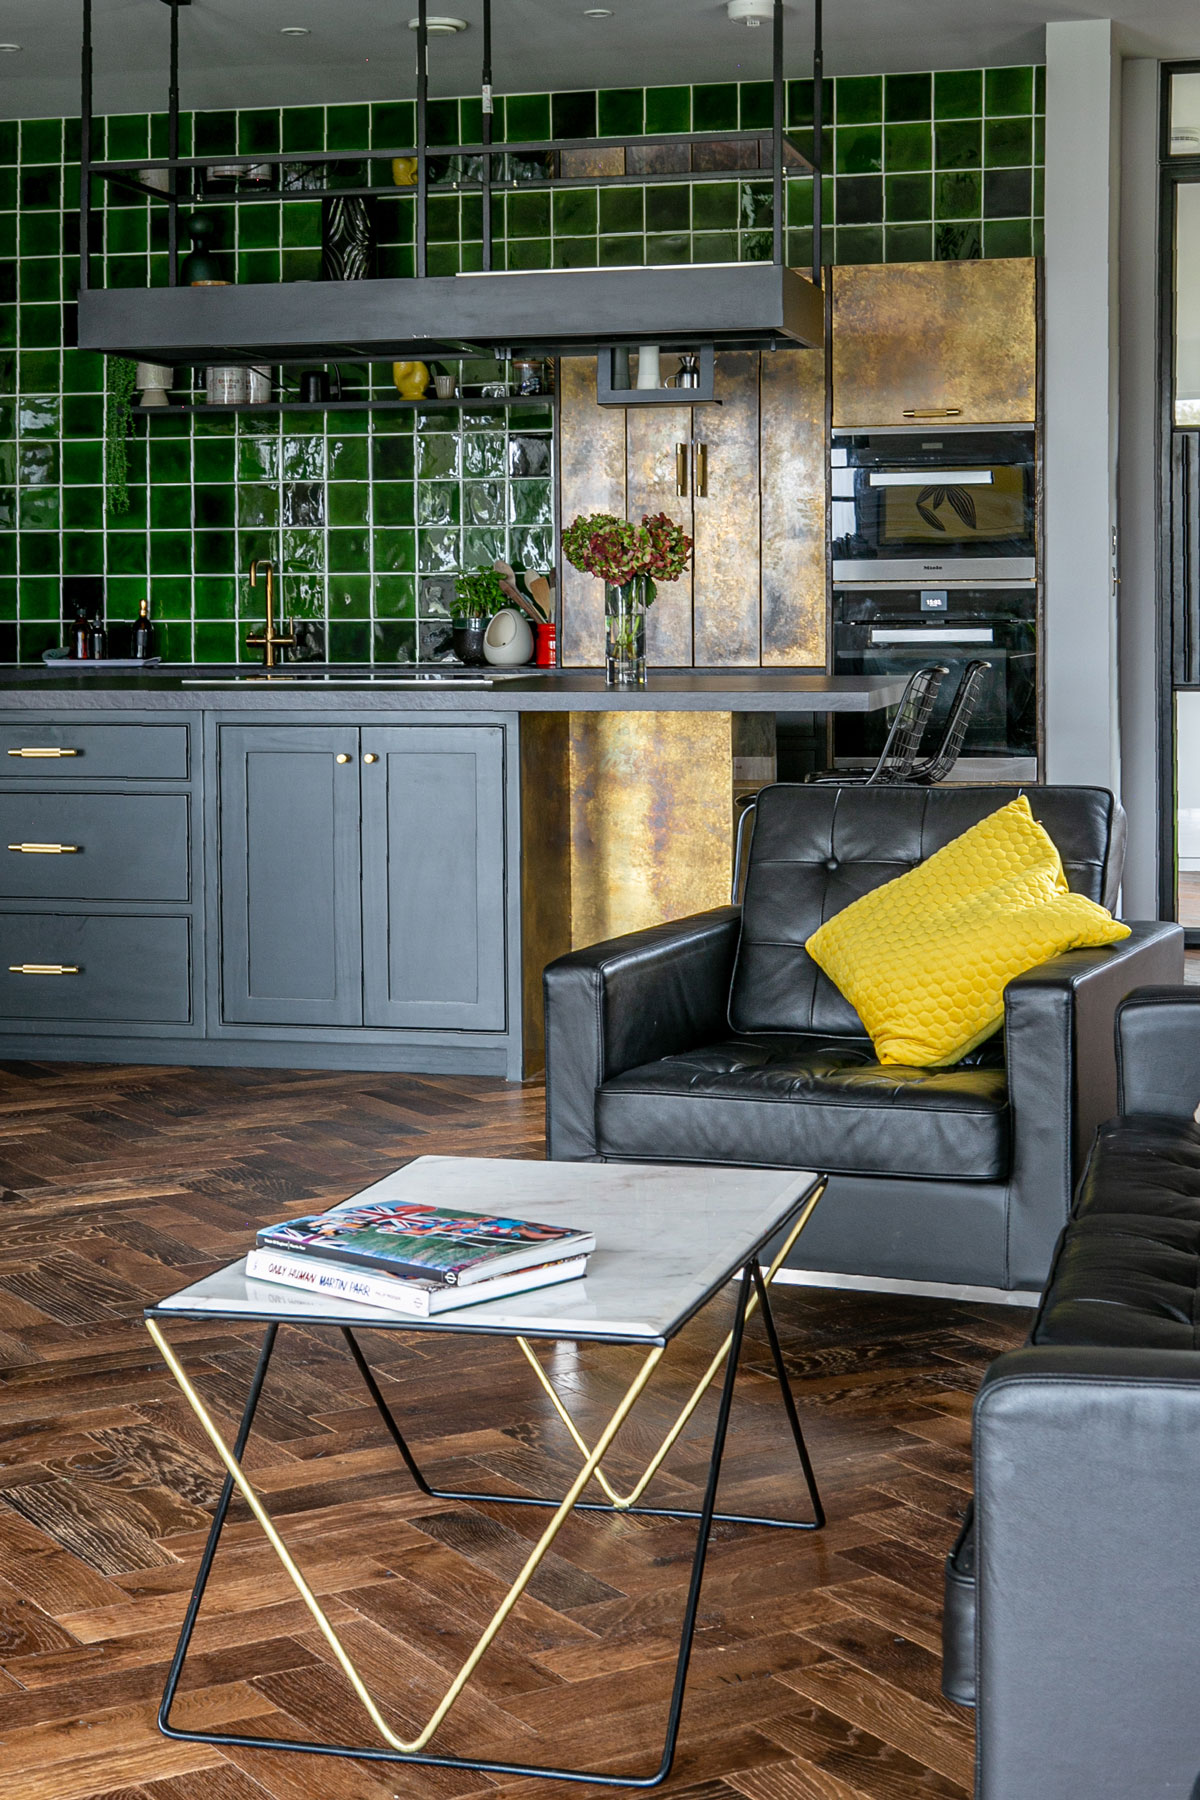 Black armchair and coffee table in open plan kitchen with parquet flooring